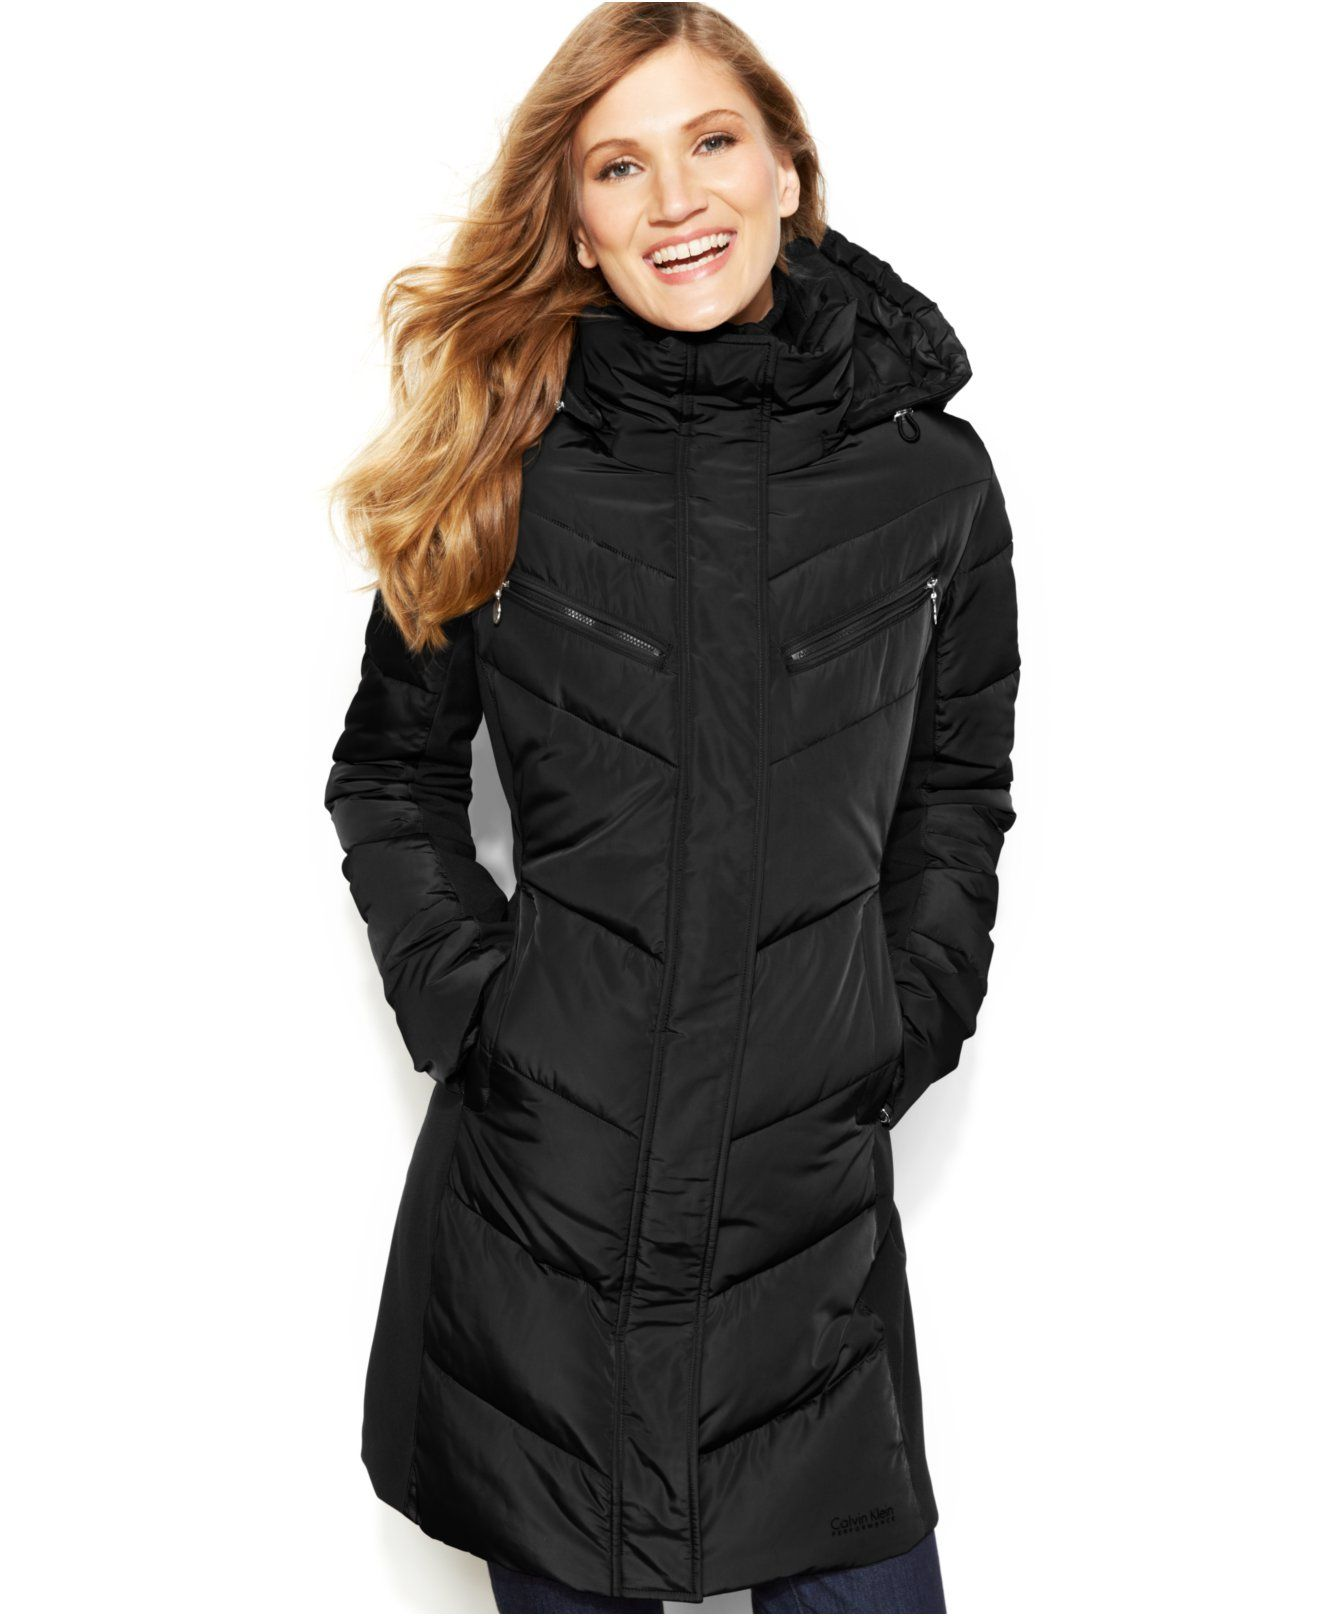 Just Bought This Jacket Can T Wait To Wear It Calvin Klein Hooded Quilted Colorblock Puffer Coat Puffer Coat Coats For Women Fashion [ 1616 x 1320 Pixel ]